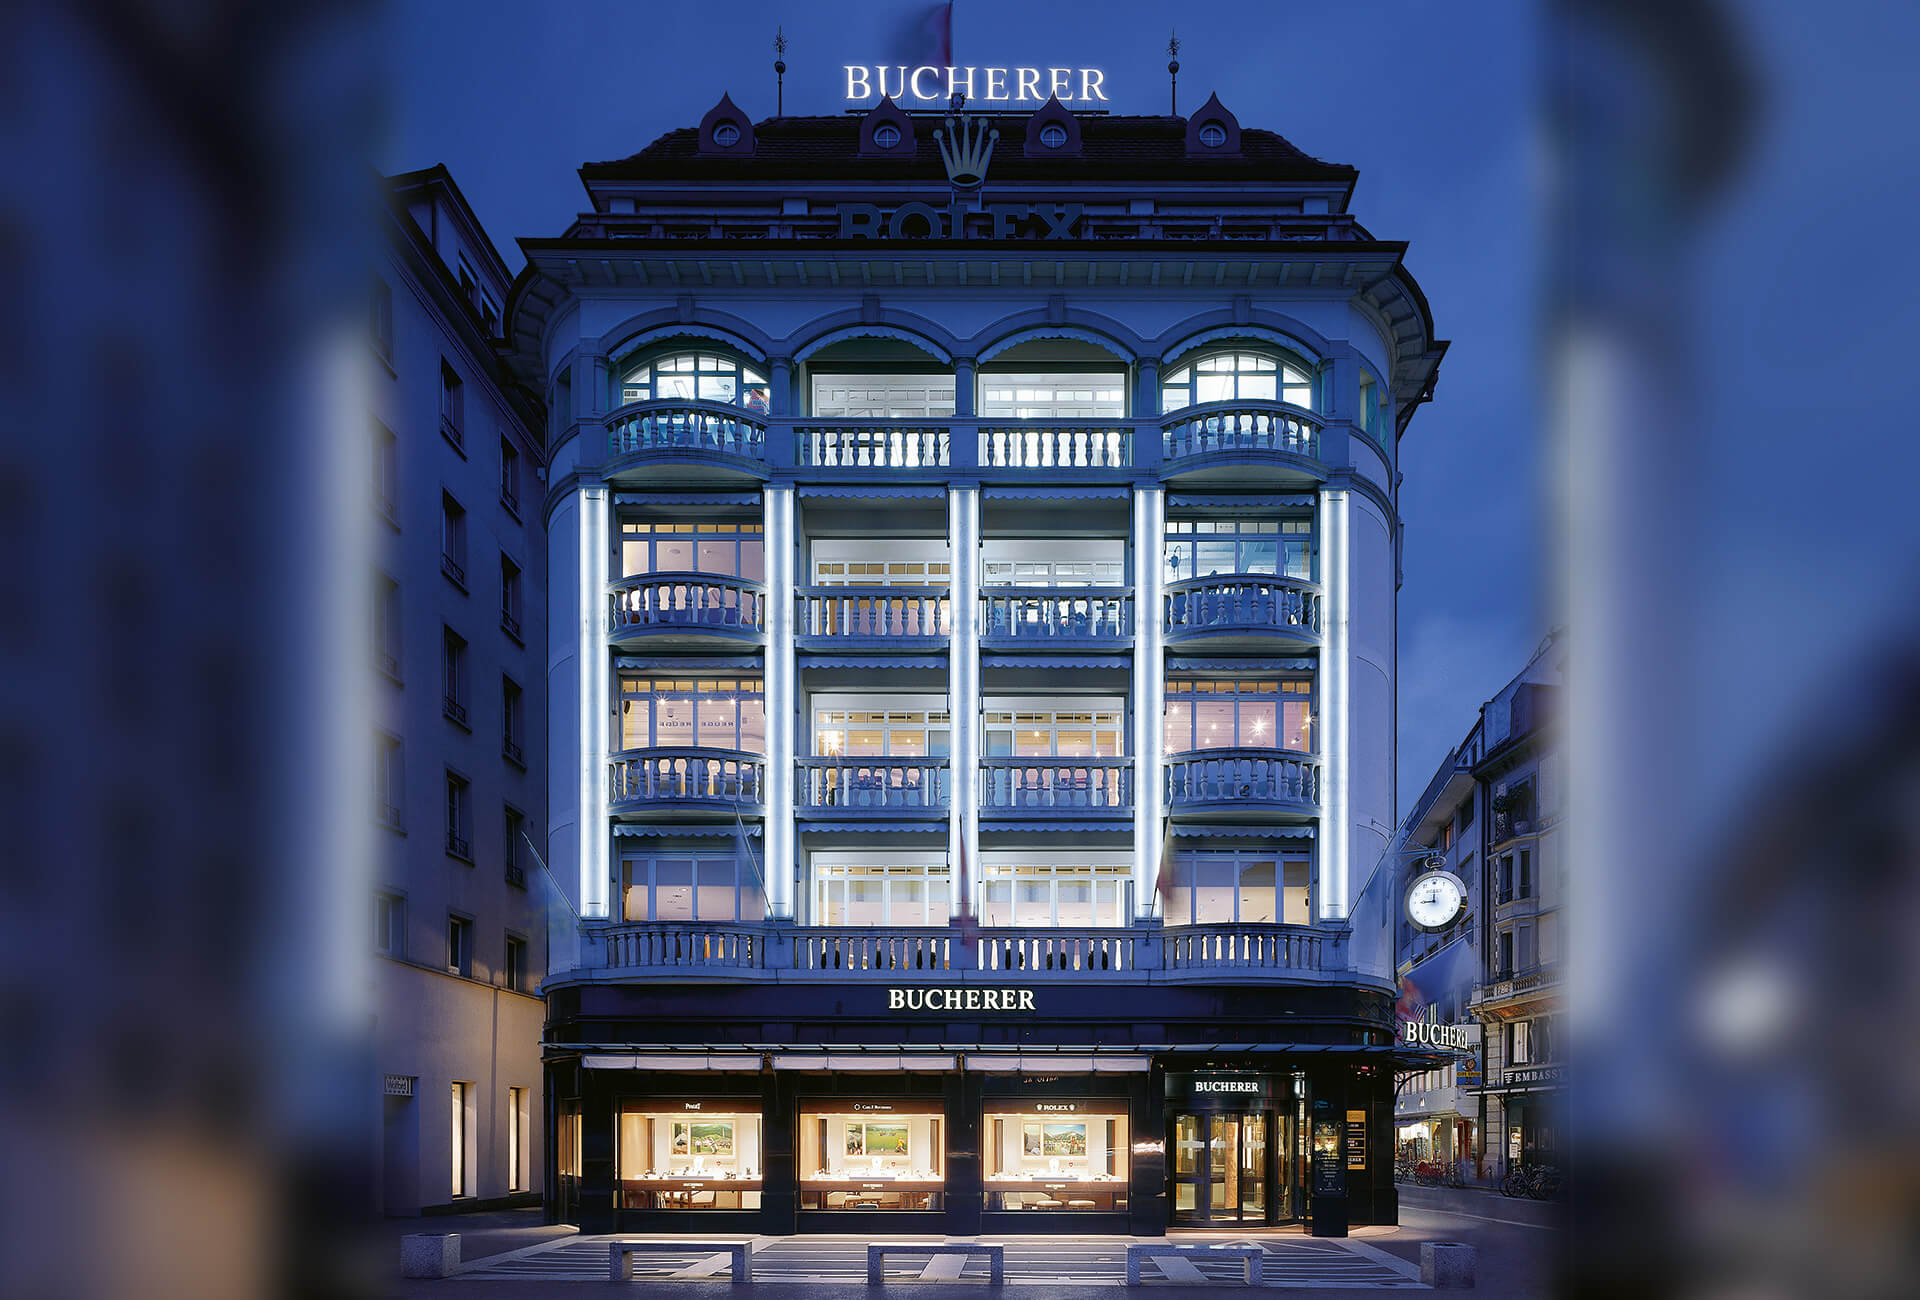 Bucherer has America in its sights – FHH Journal